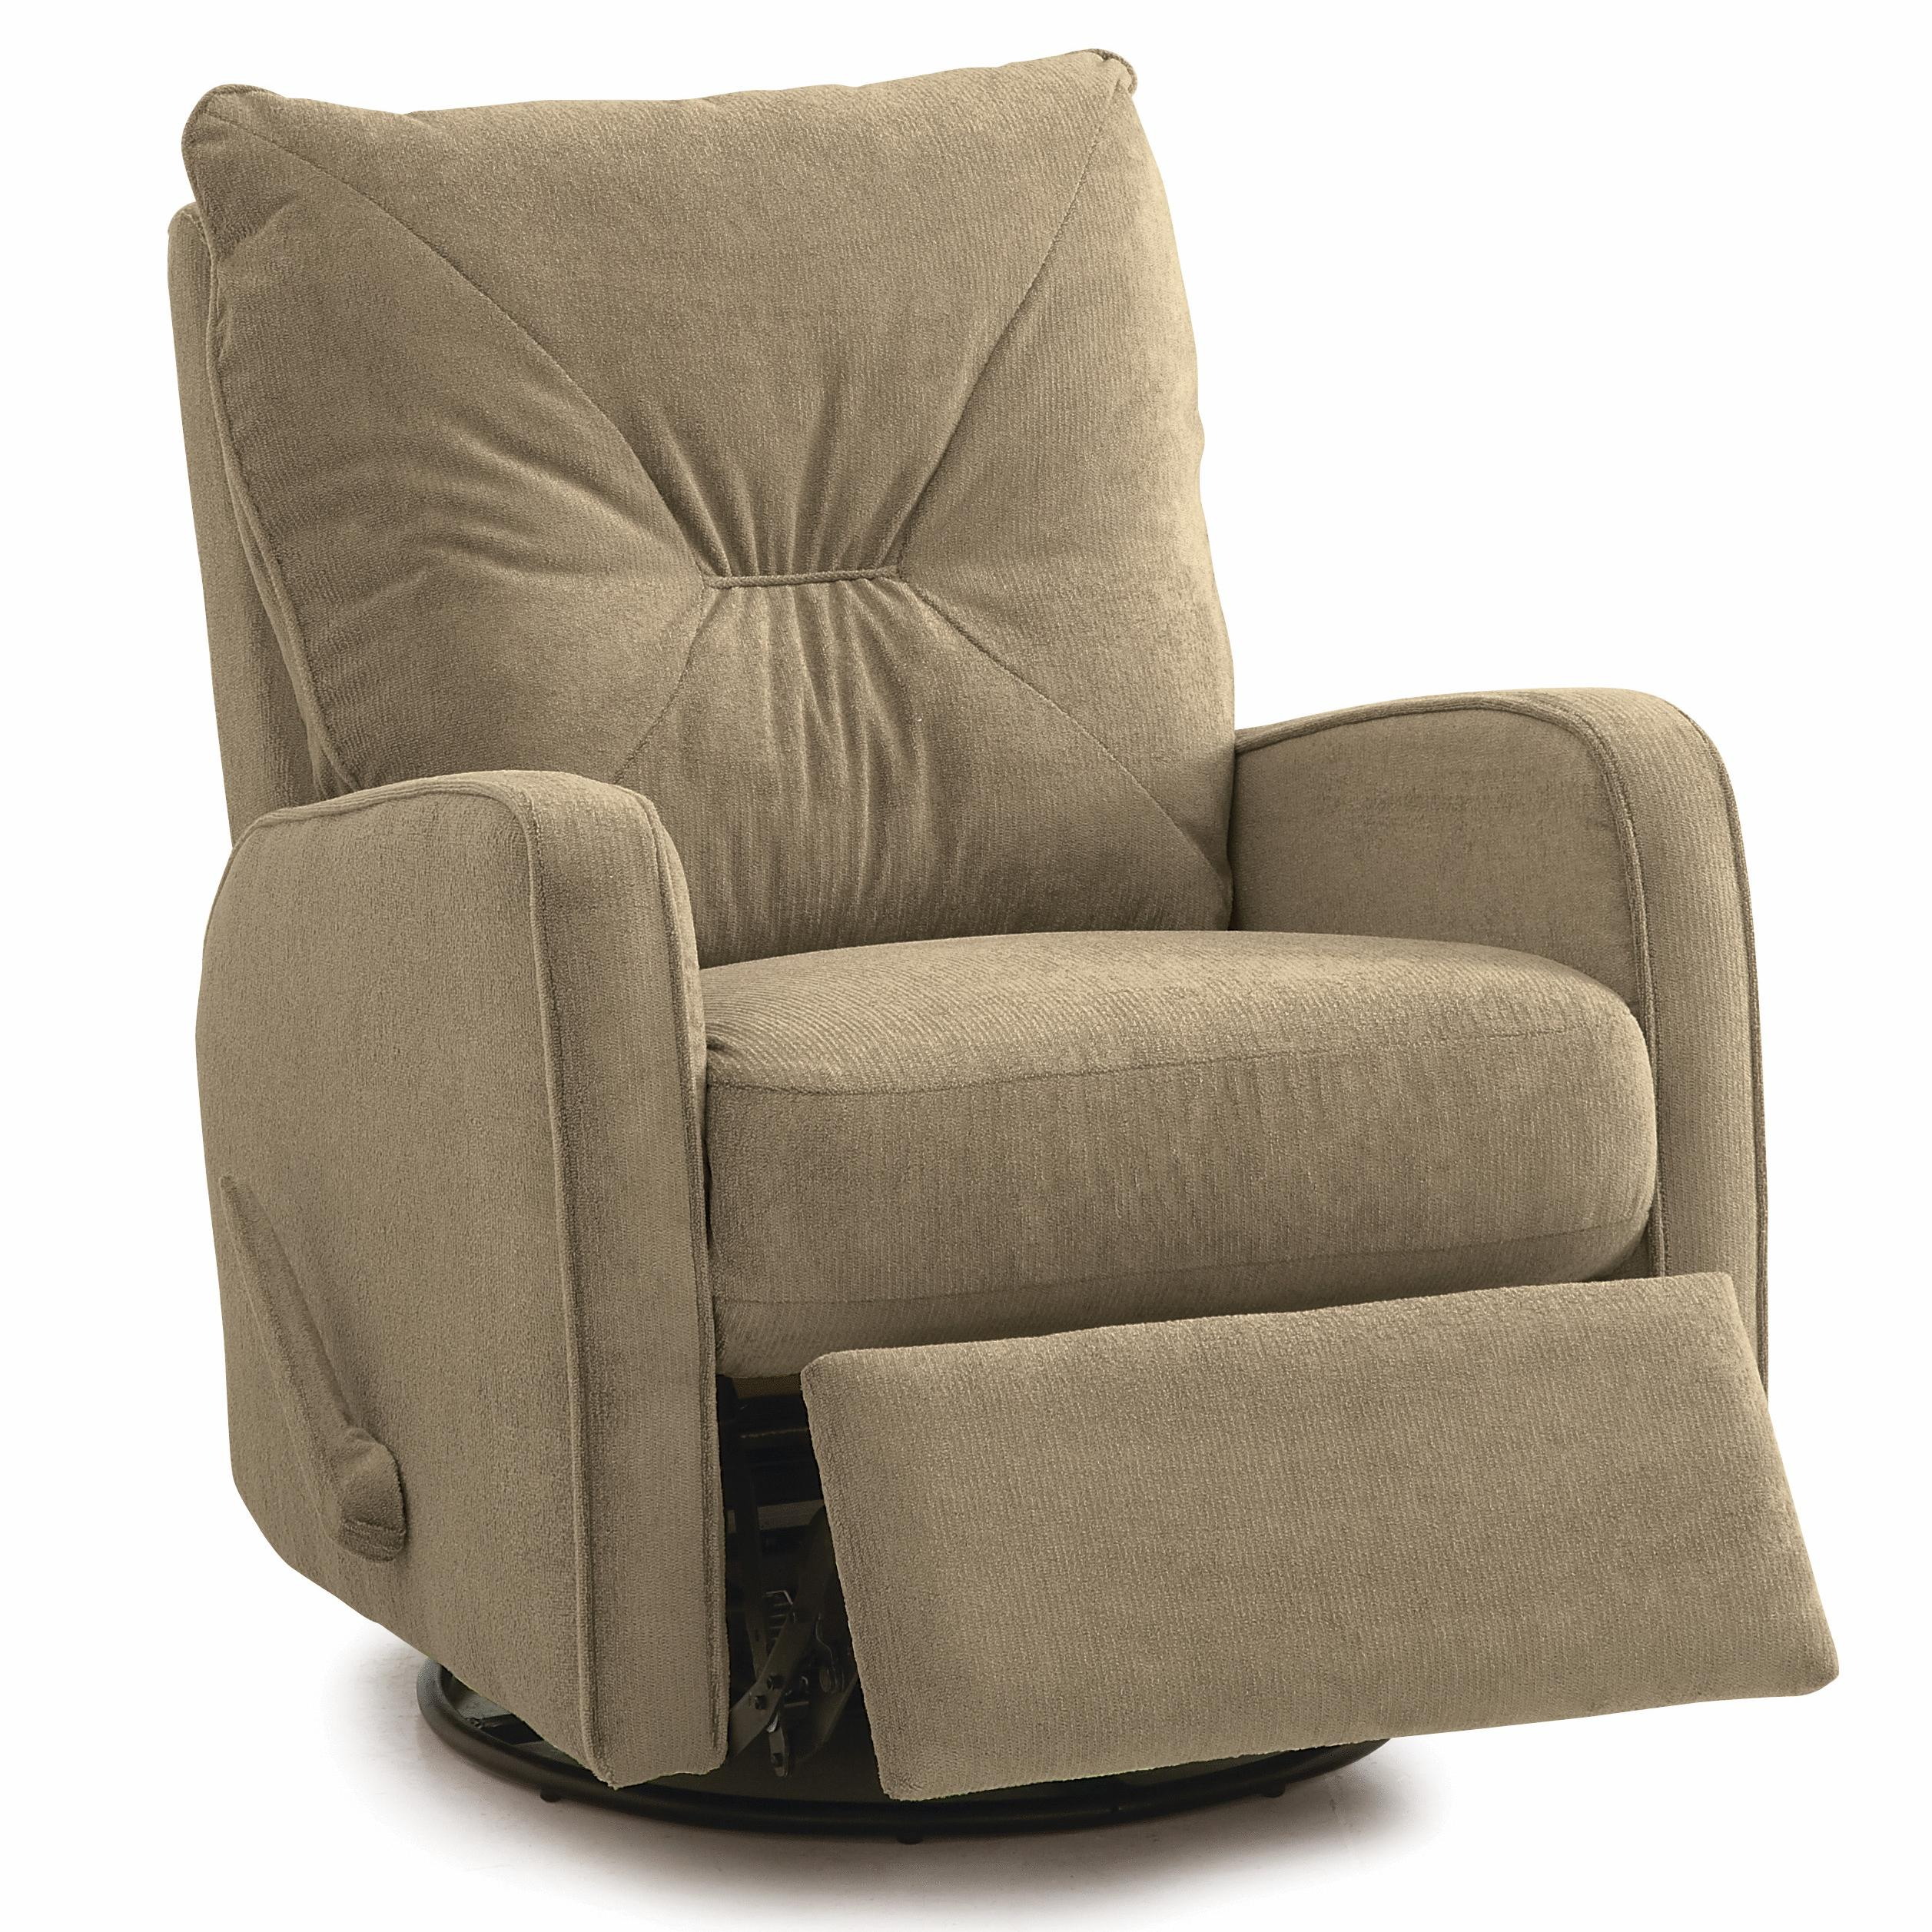 Palliser Theo 42002 33 Swivel Rocking Reclining Chair | Dunk Pertaining To Theo Ii Swivel Chairs (Image 11 of 20)